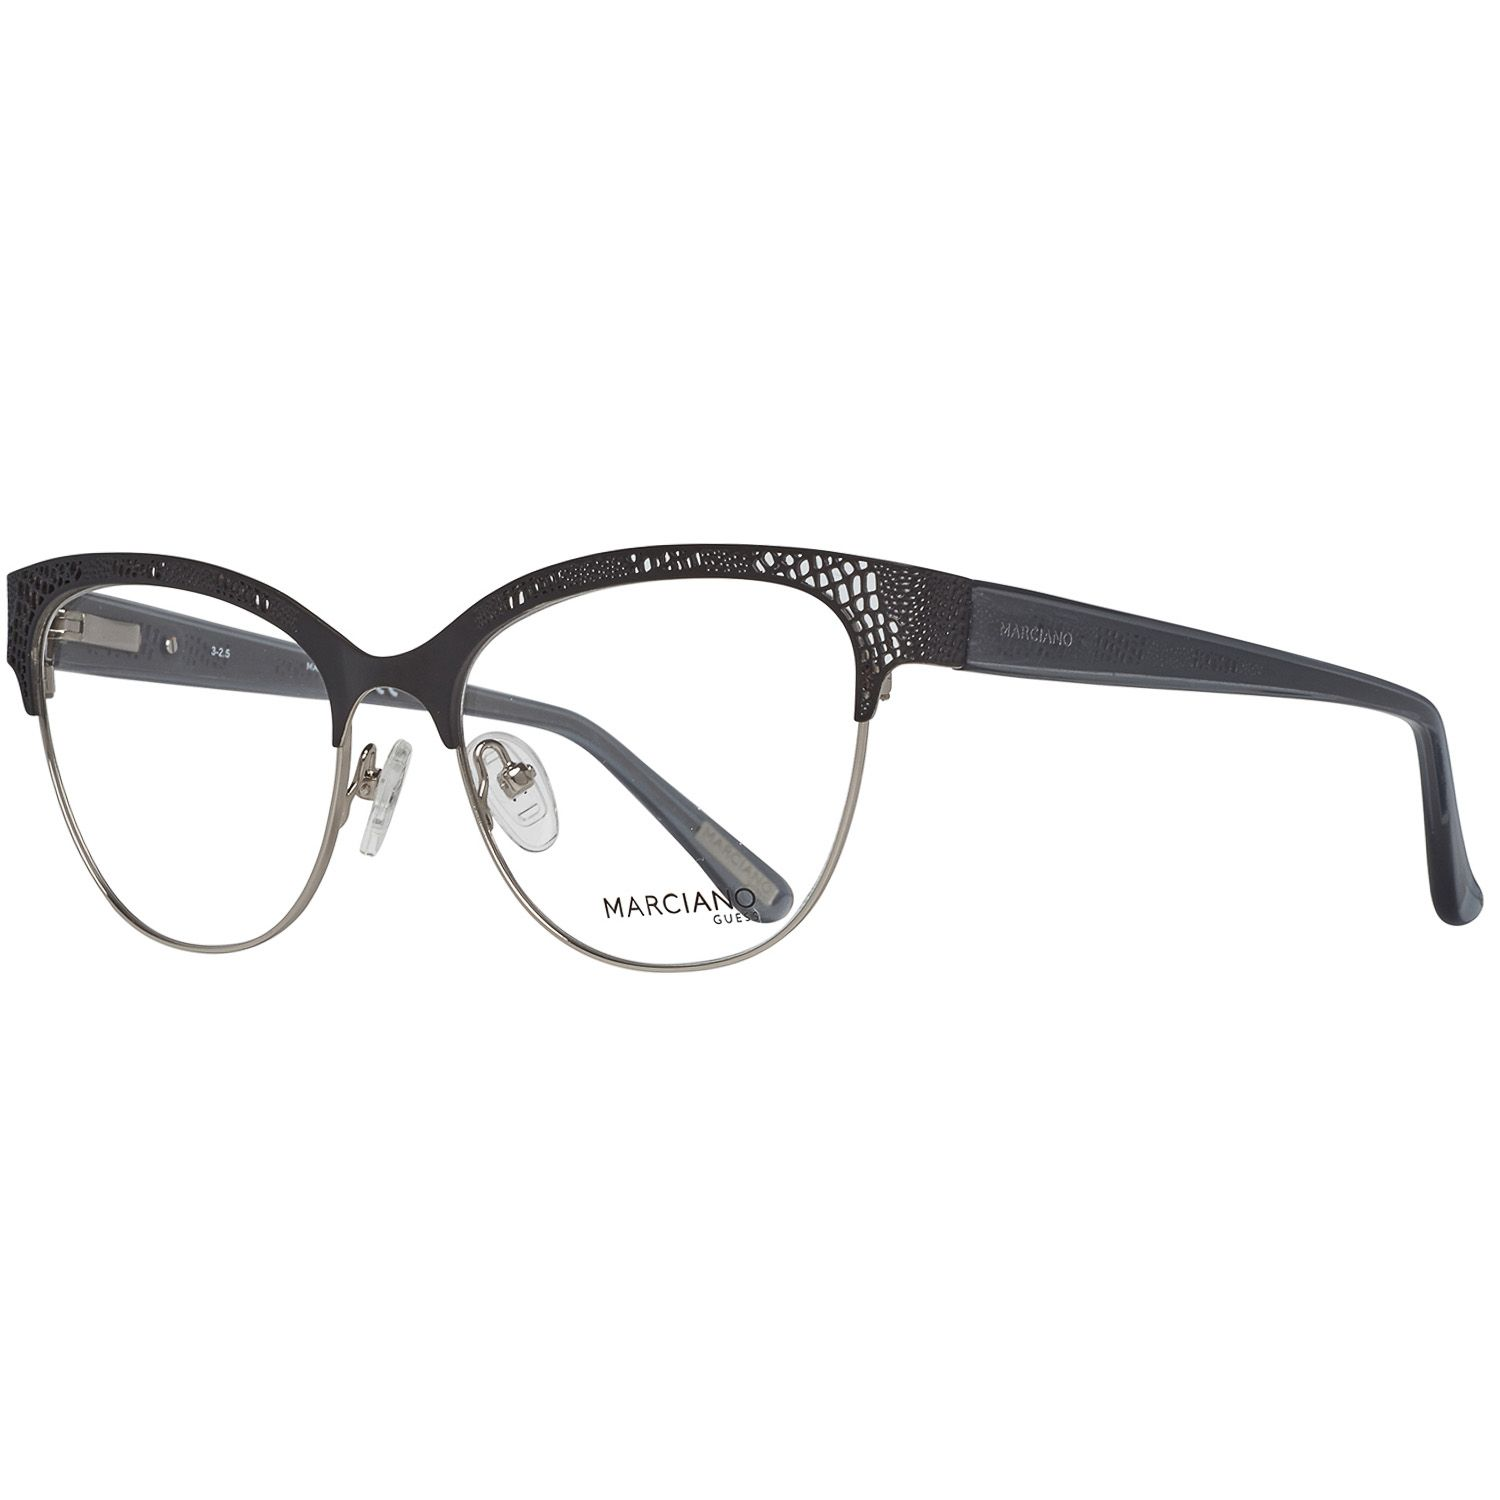 Guess By Marciano Optical Frame GM0273 005 53 Women Black